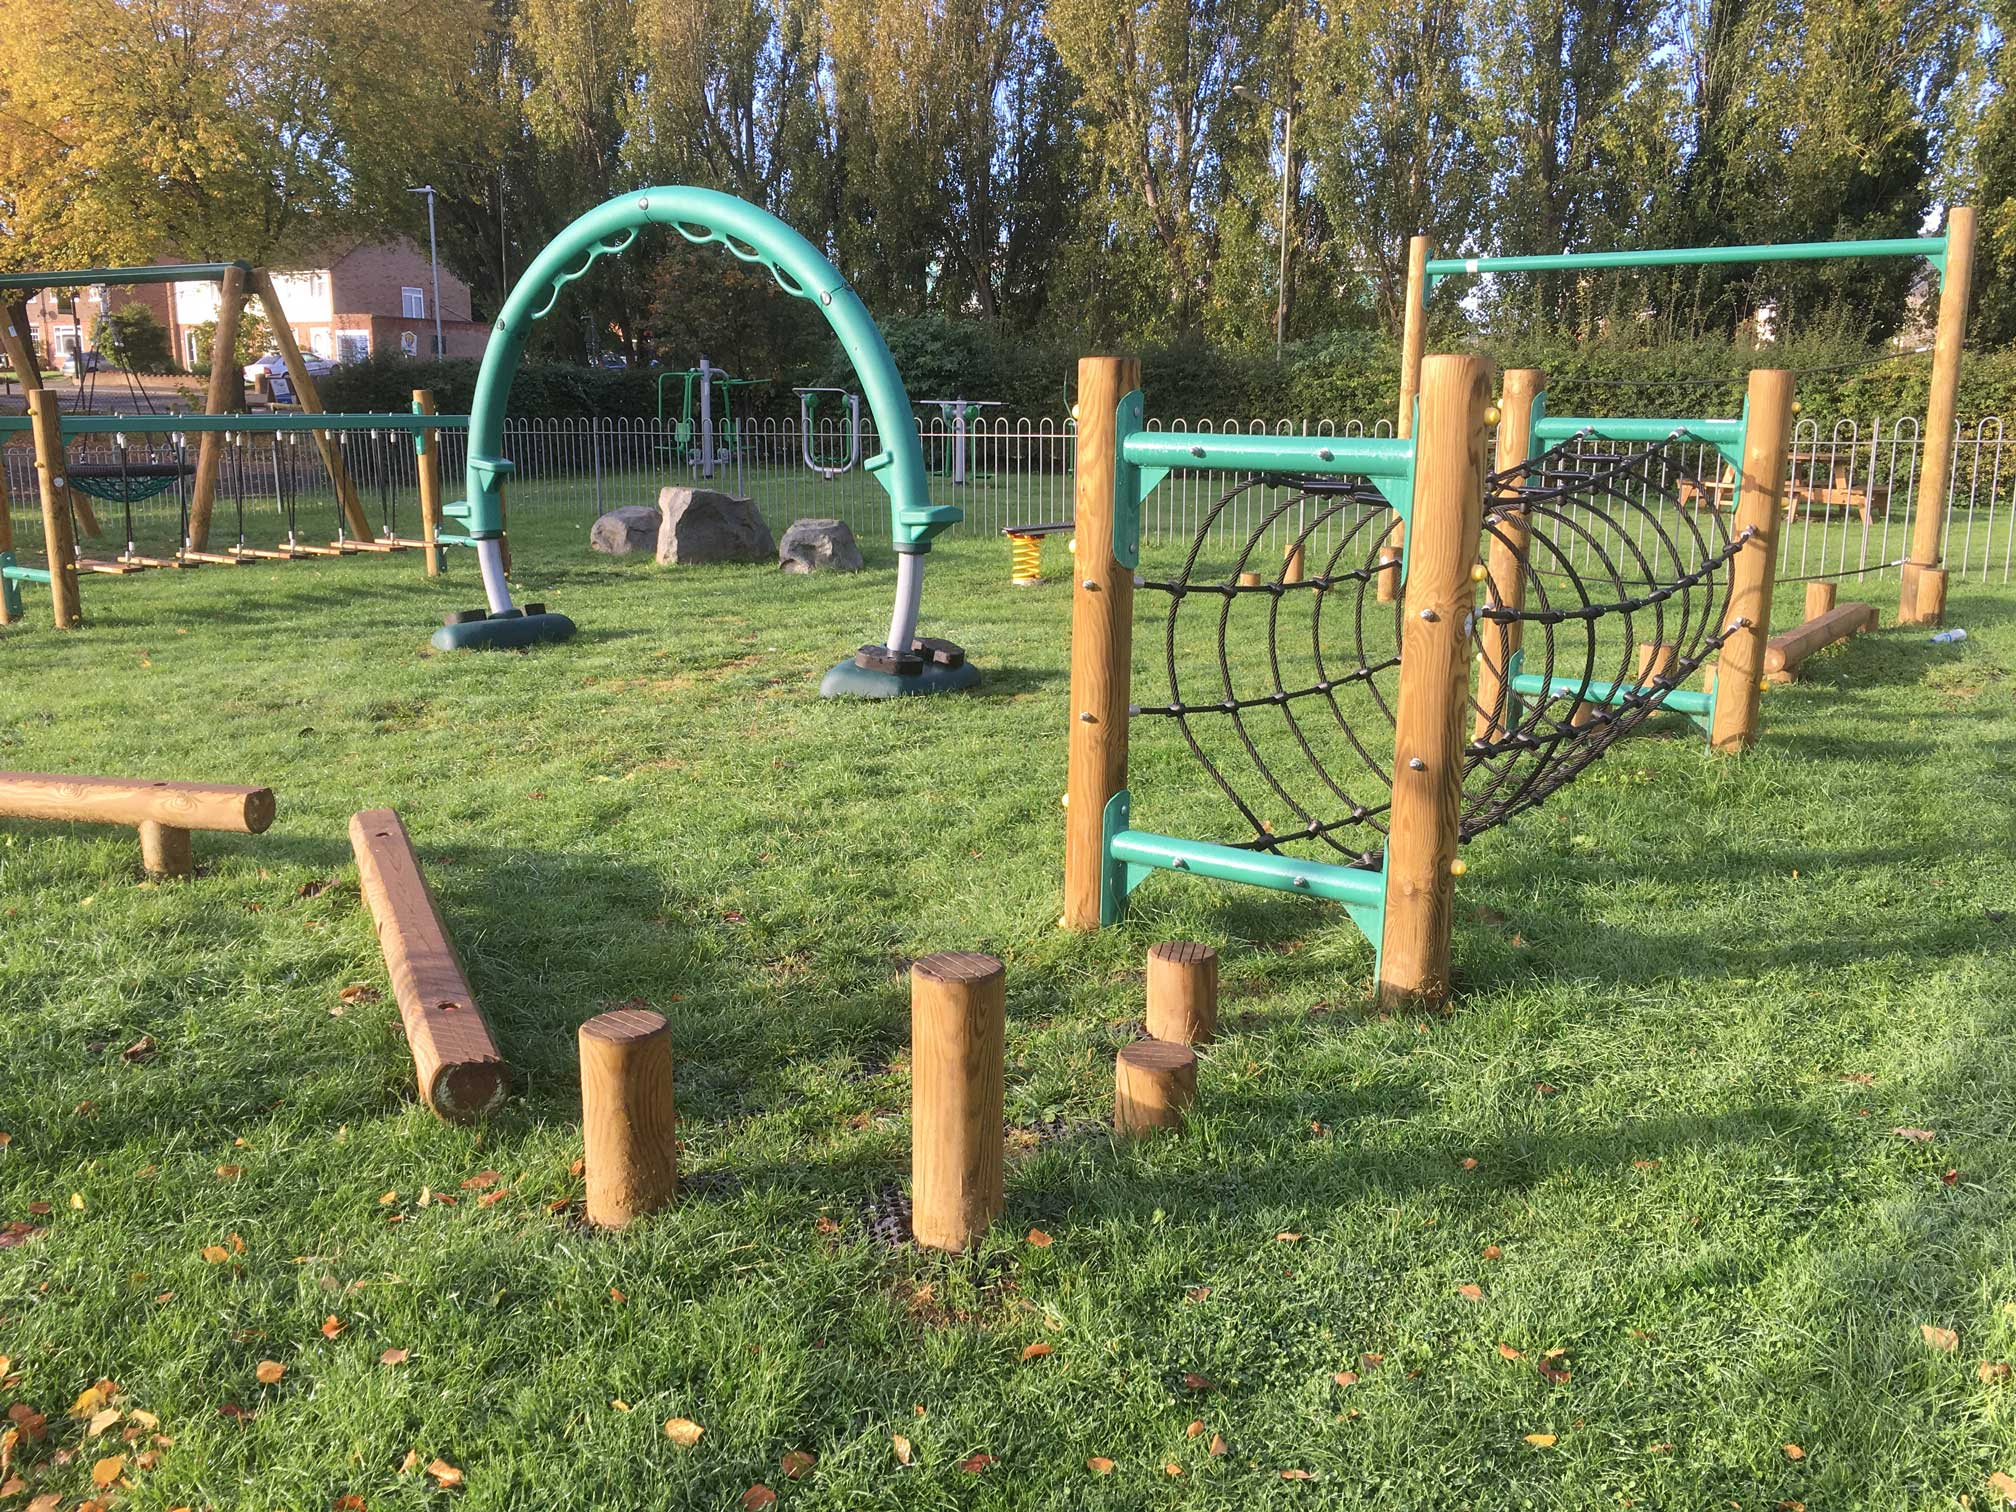 Watford Community Housing Trust Playground And Outdoor Gym